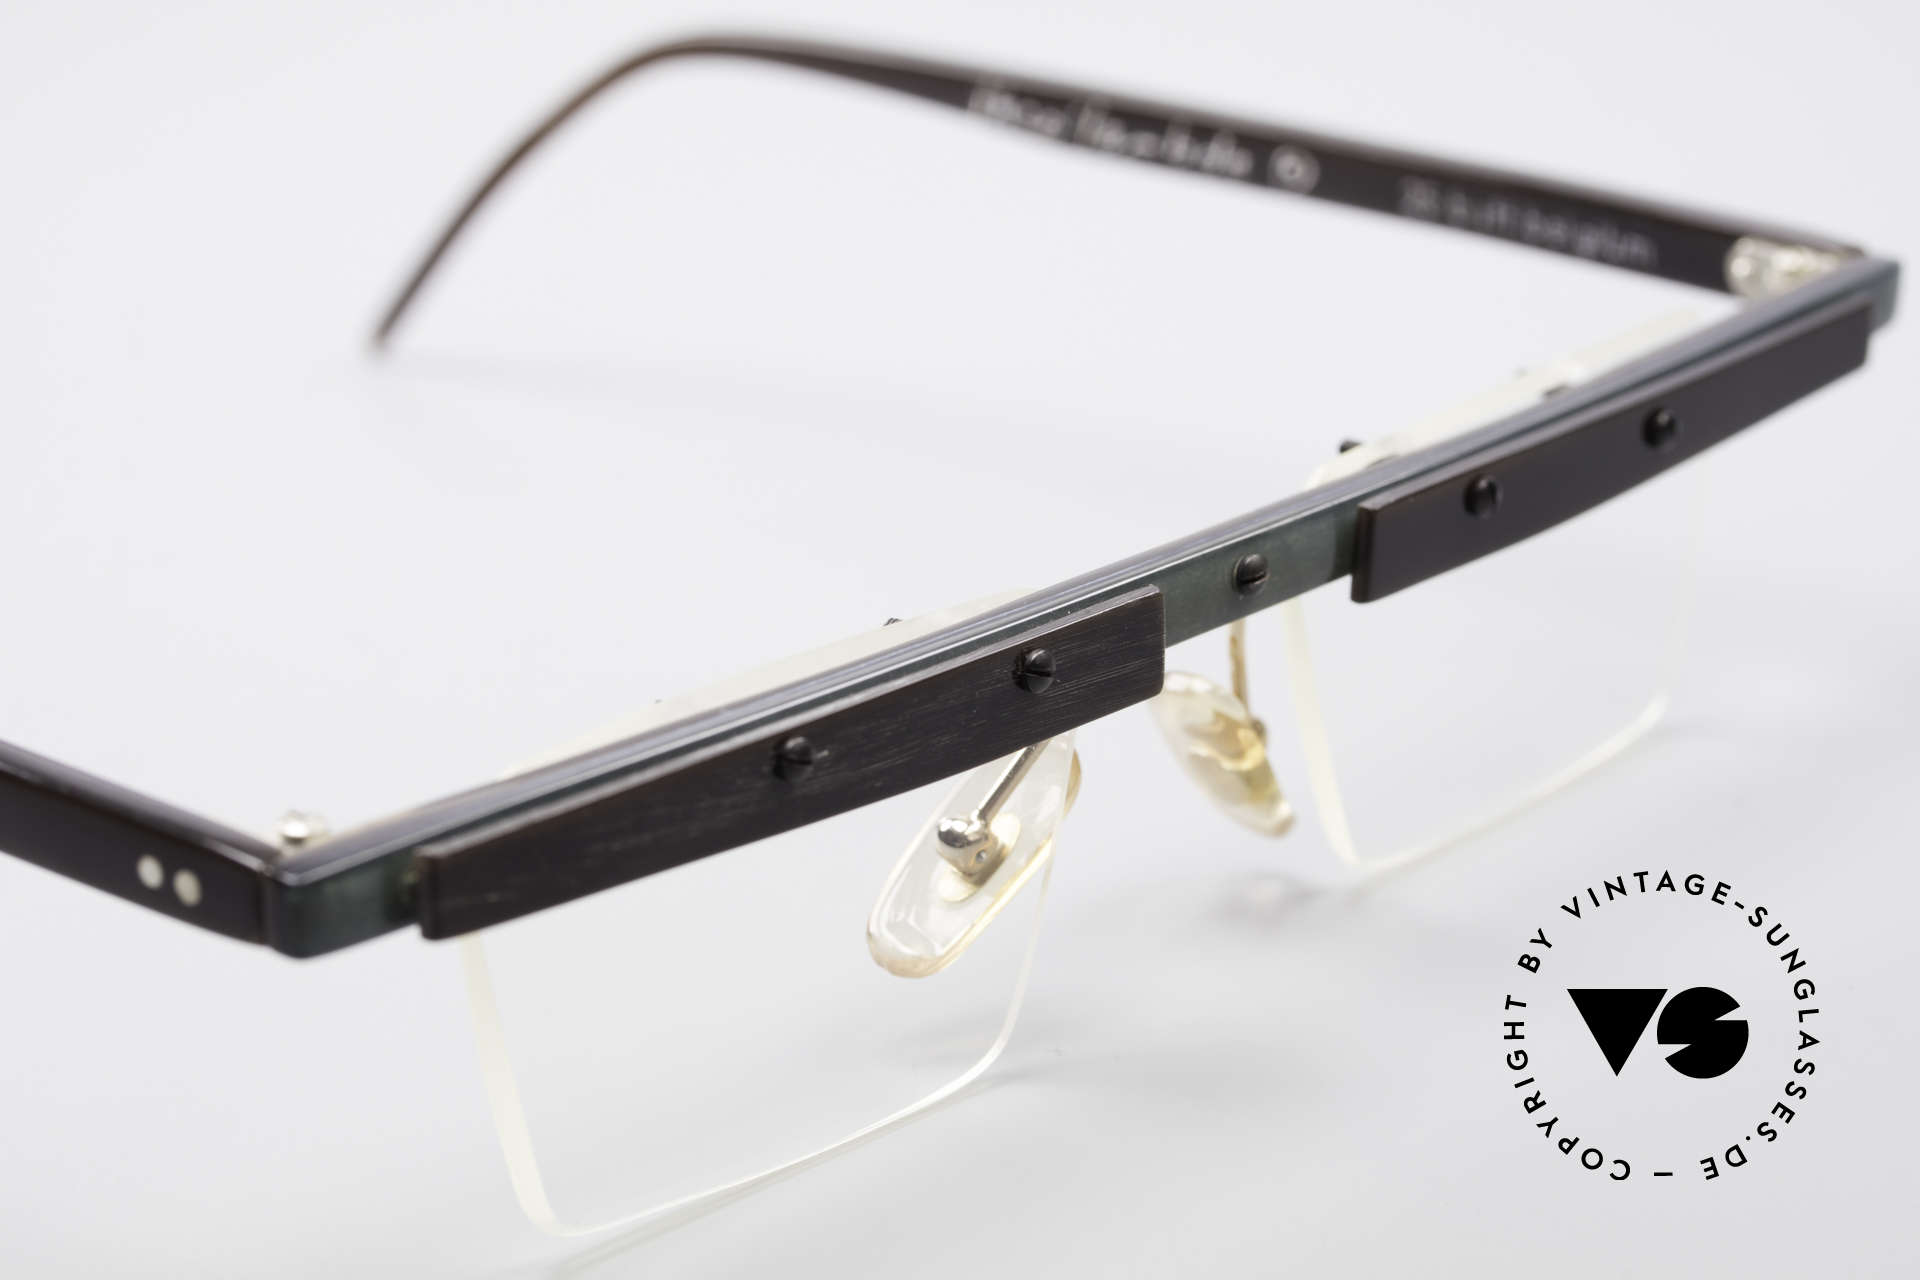 Theo Belgium Lambeta 80's Buffalo Horn Eyeglasses, so to speak: vintage eyeglasses with representativeness, Made for Men